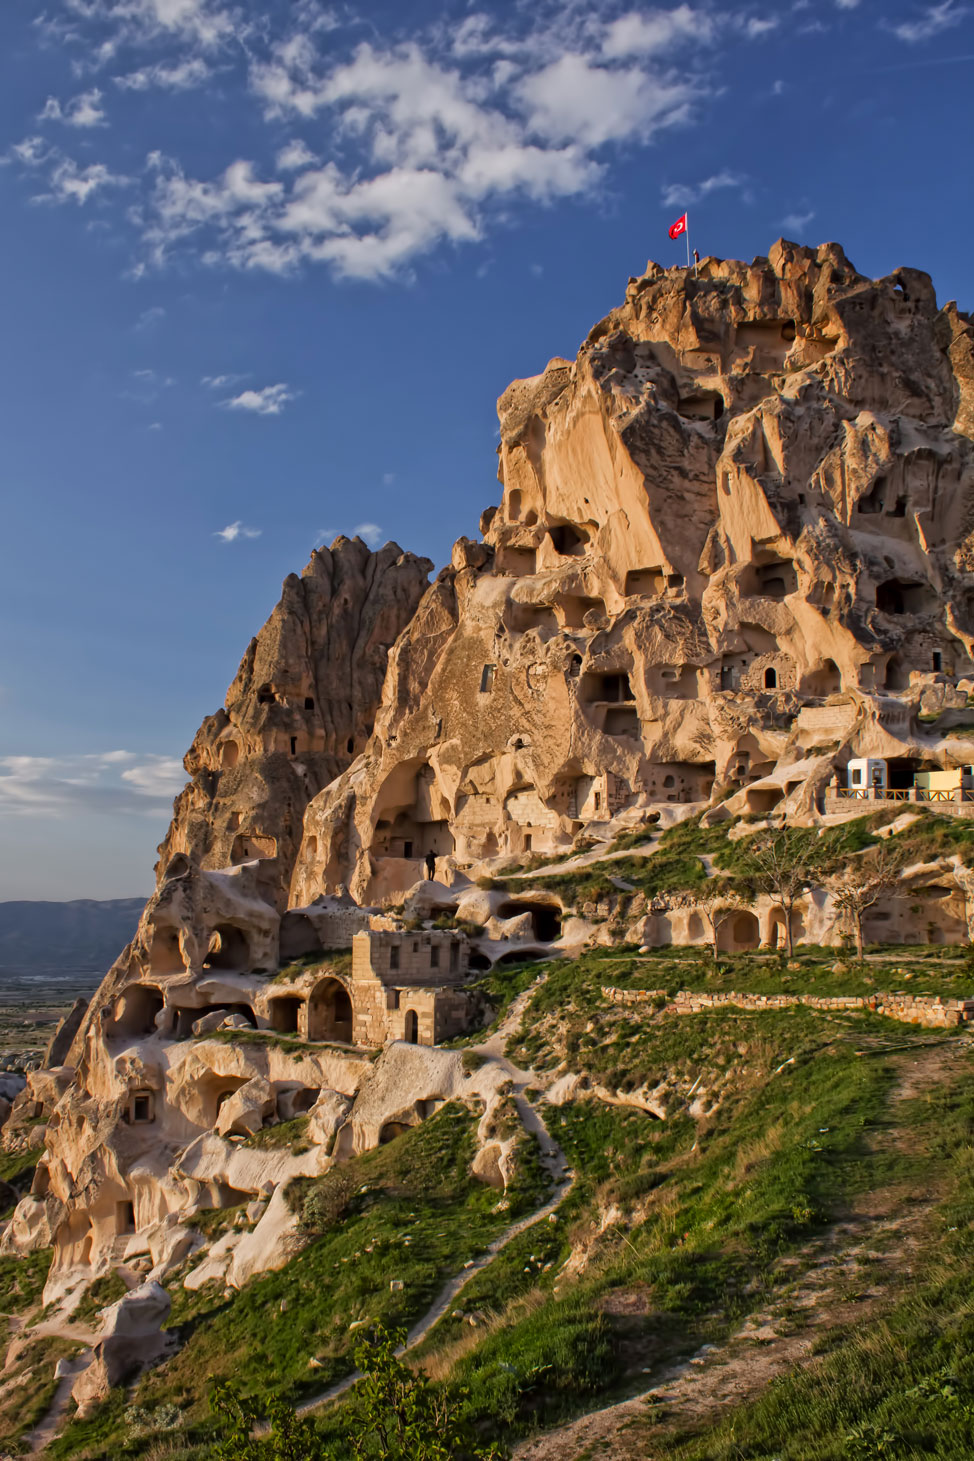 Hiking Cappadocia in Turkey | Hecktic Travels